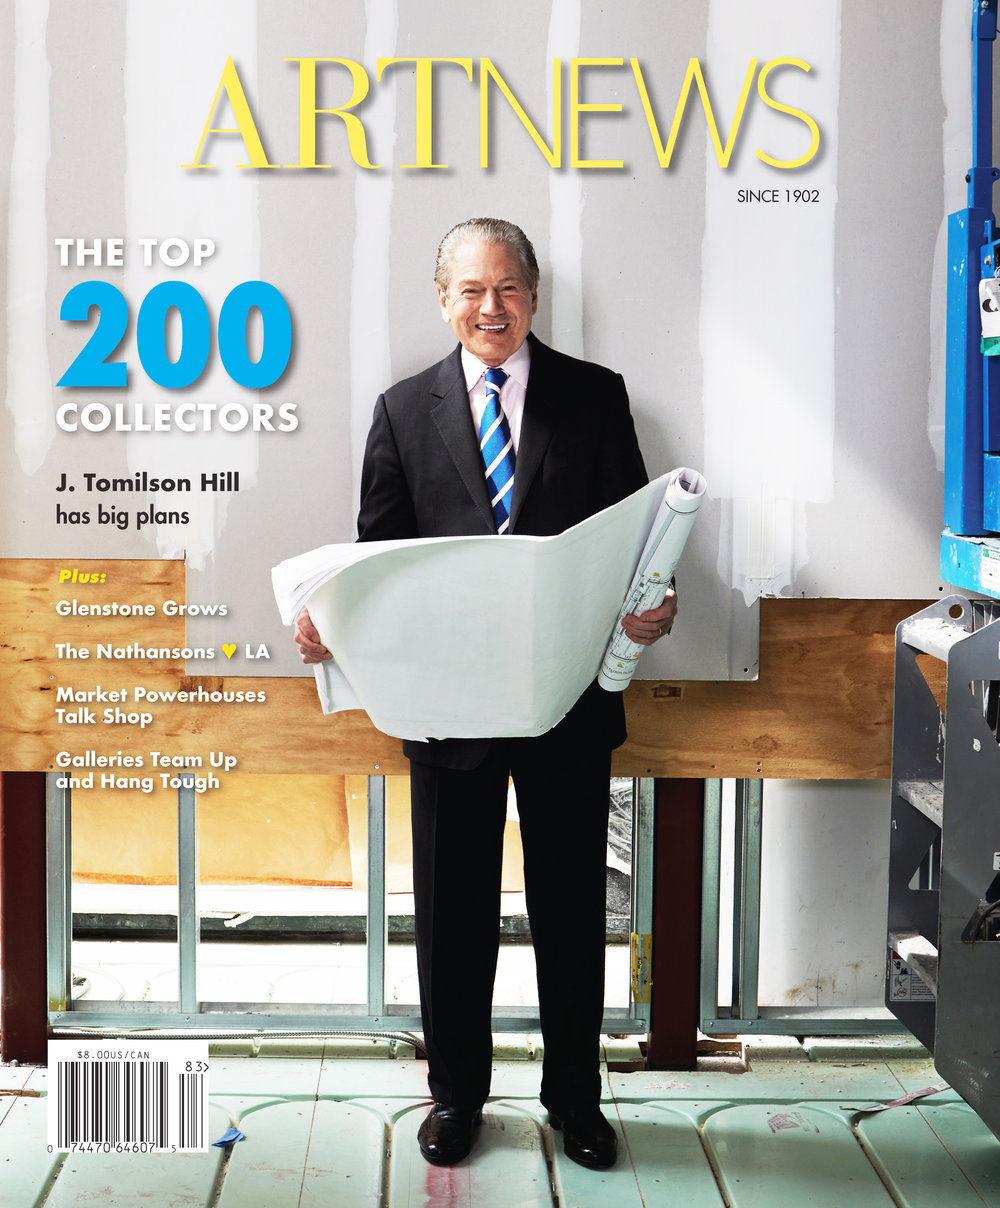 ARTnews_Cover_RT.jpg